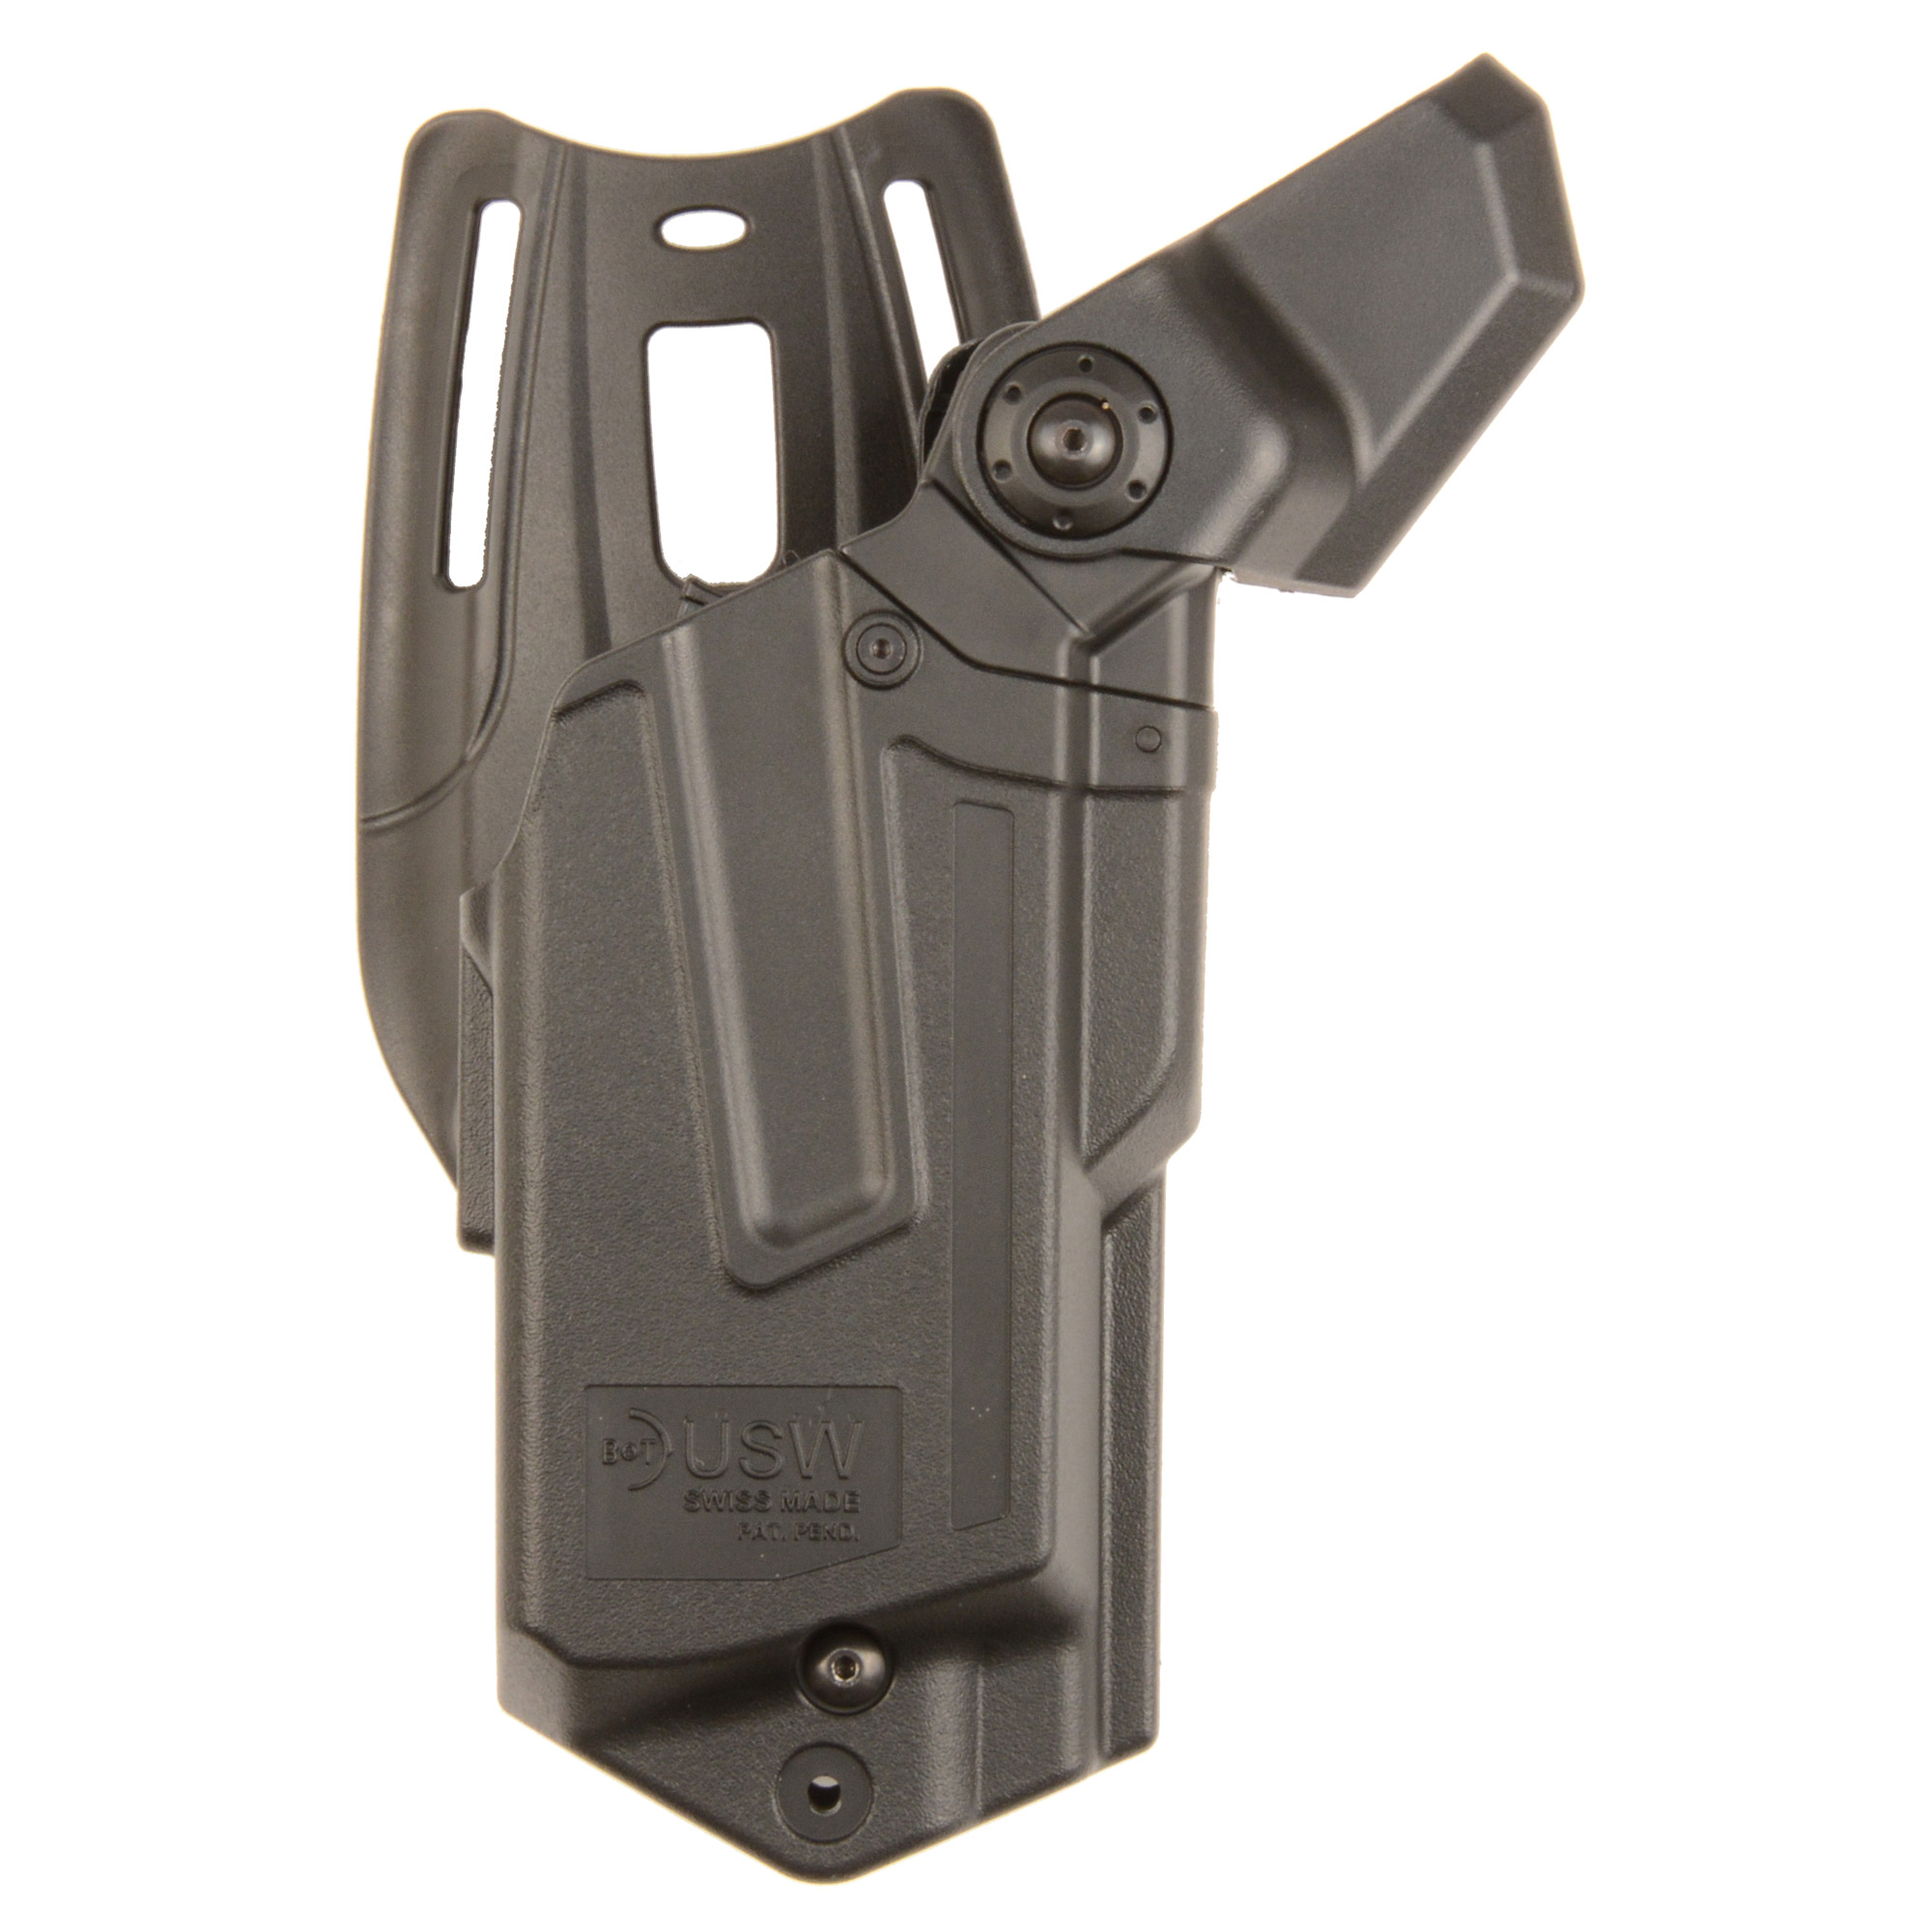 """The perfect holster for those who carry a duty gun. Thanks to its sophisticated safety mechanisms"""" the USW is protected from unauthorized access"""" while the legitimated user can draw the gun immediately. The holster rides below the belt in order to guarantee an ergonomic and fast draw."""